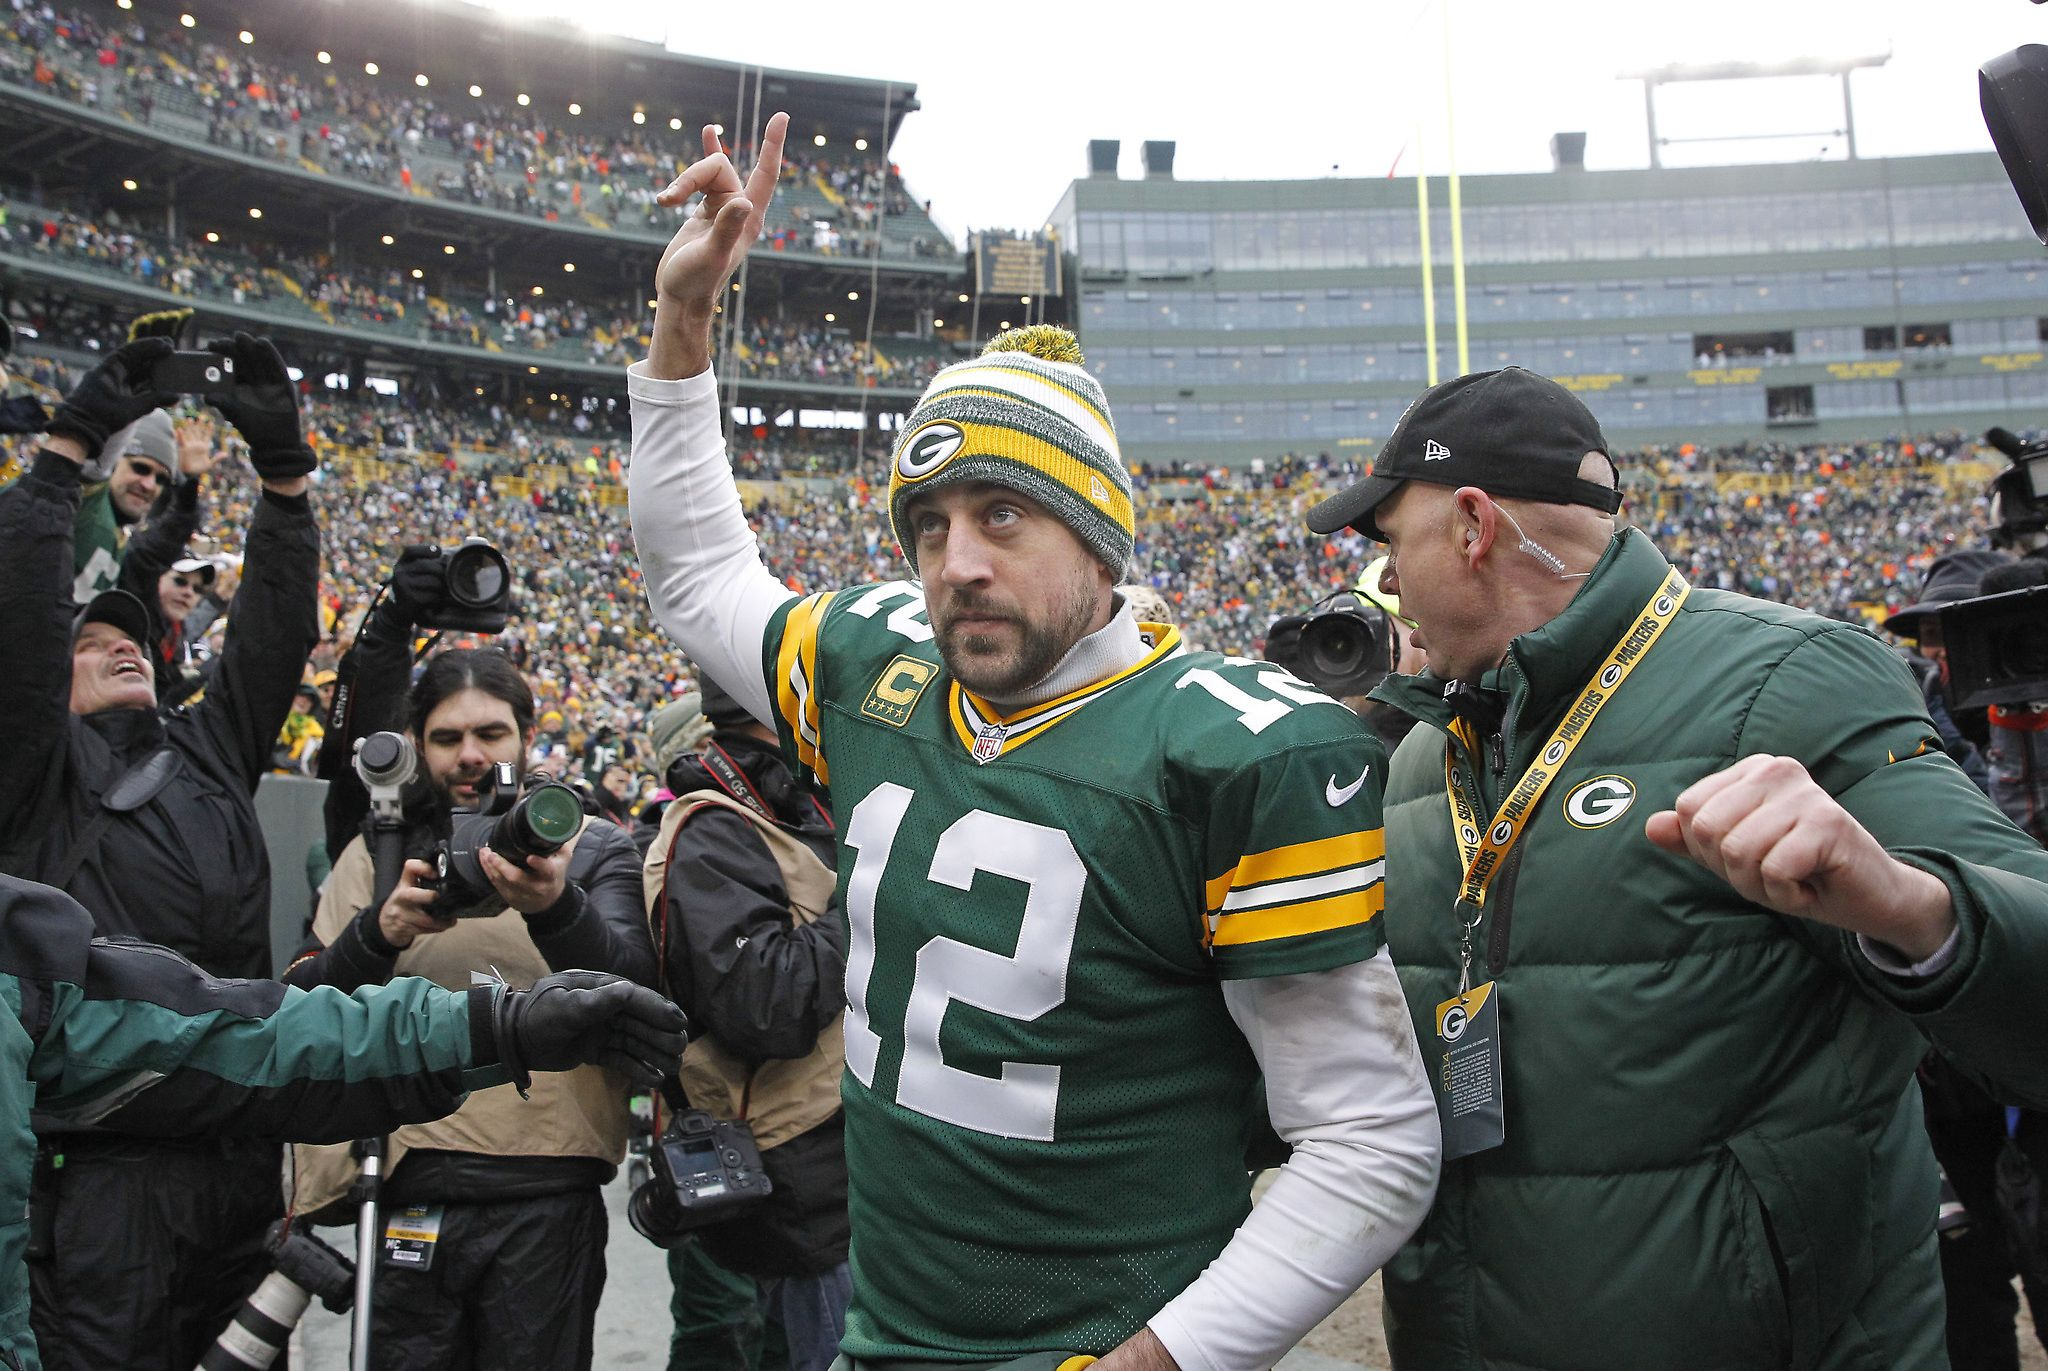 Aaron Rodgers Correct Response Who Just Won Celebrity Jeopardy With Images Celebrities Aaron Rodgers Mark Kelly